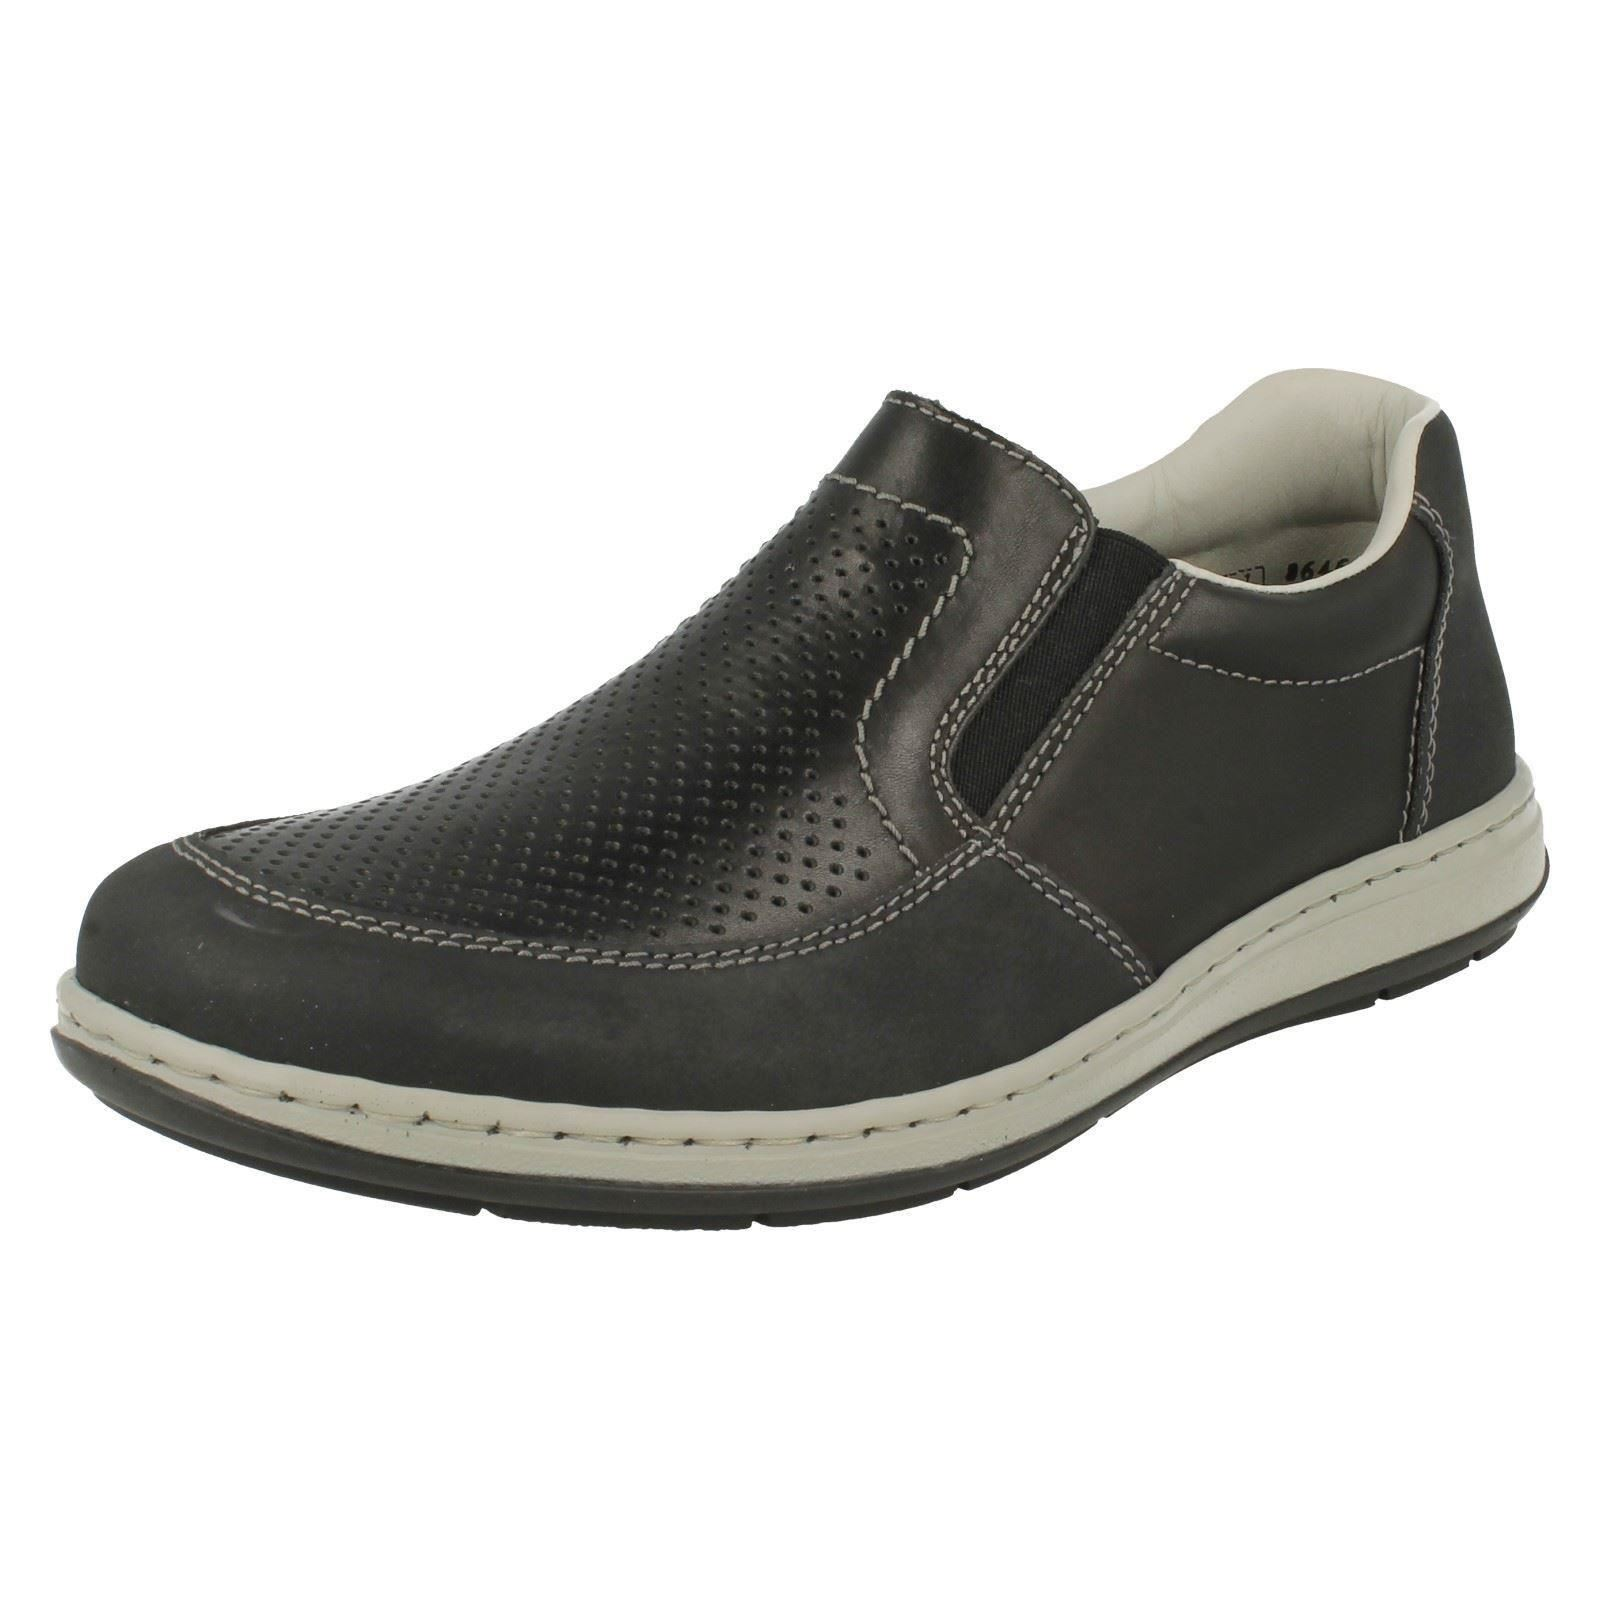 Mens Rieker Casual Slip On Shoes 17357